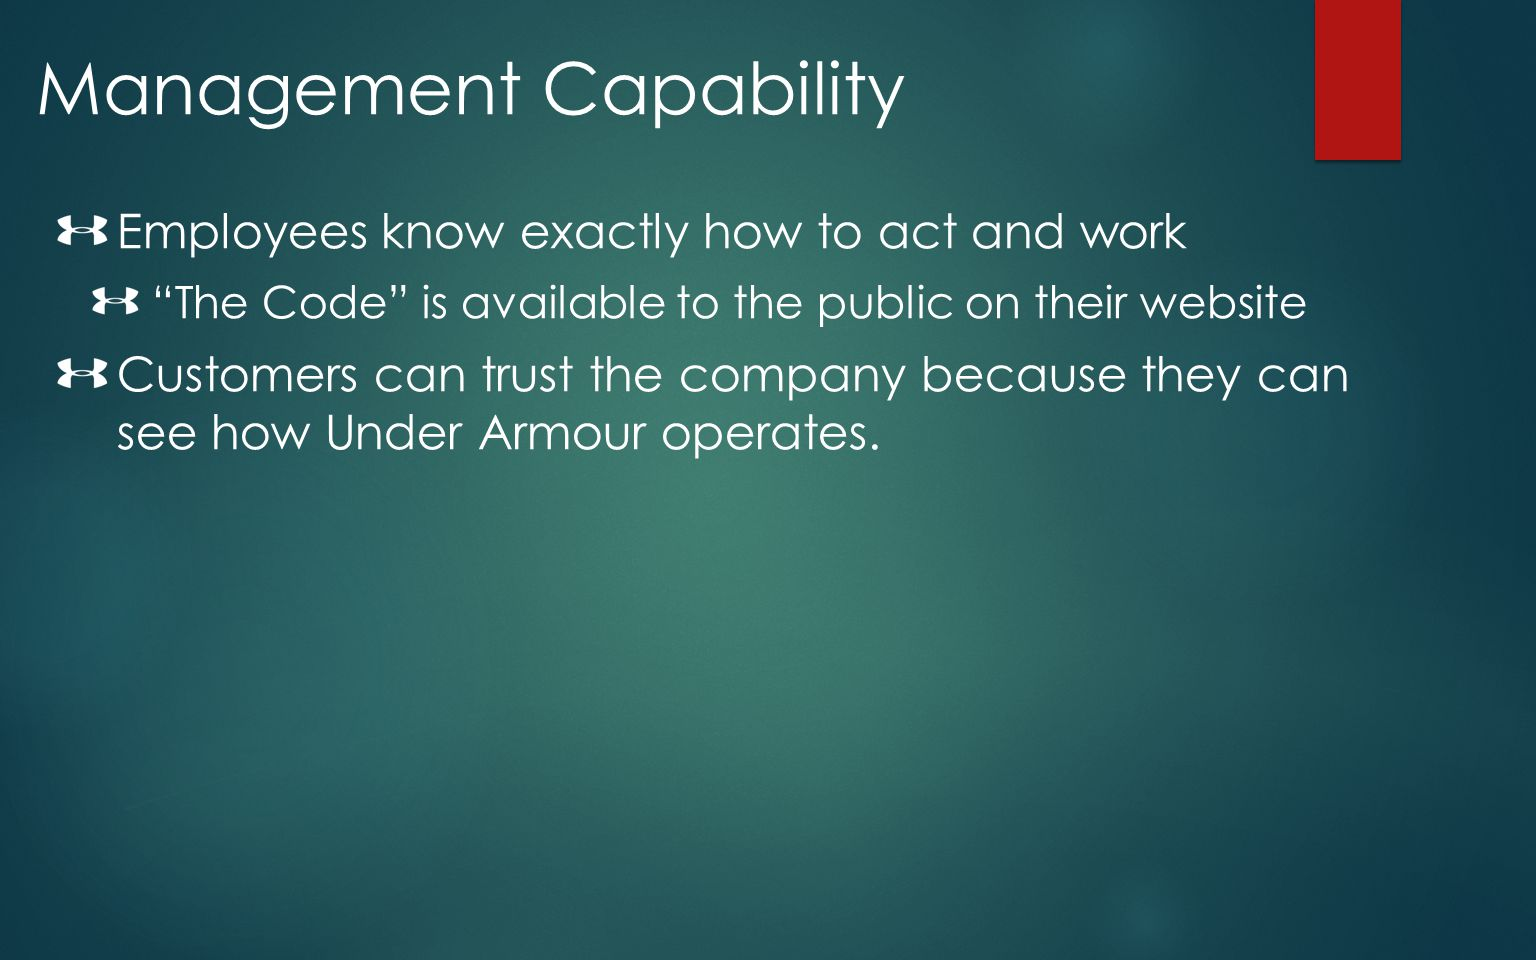 Management Capability Employees know exactly how to act and work The Code is available to the public on their website Customers can trust the company